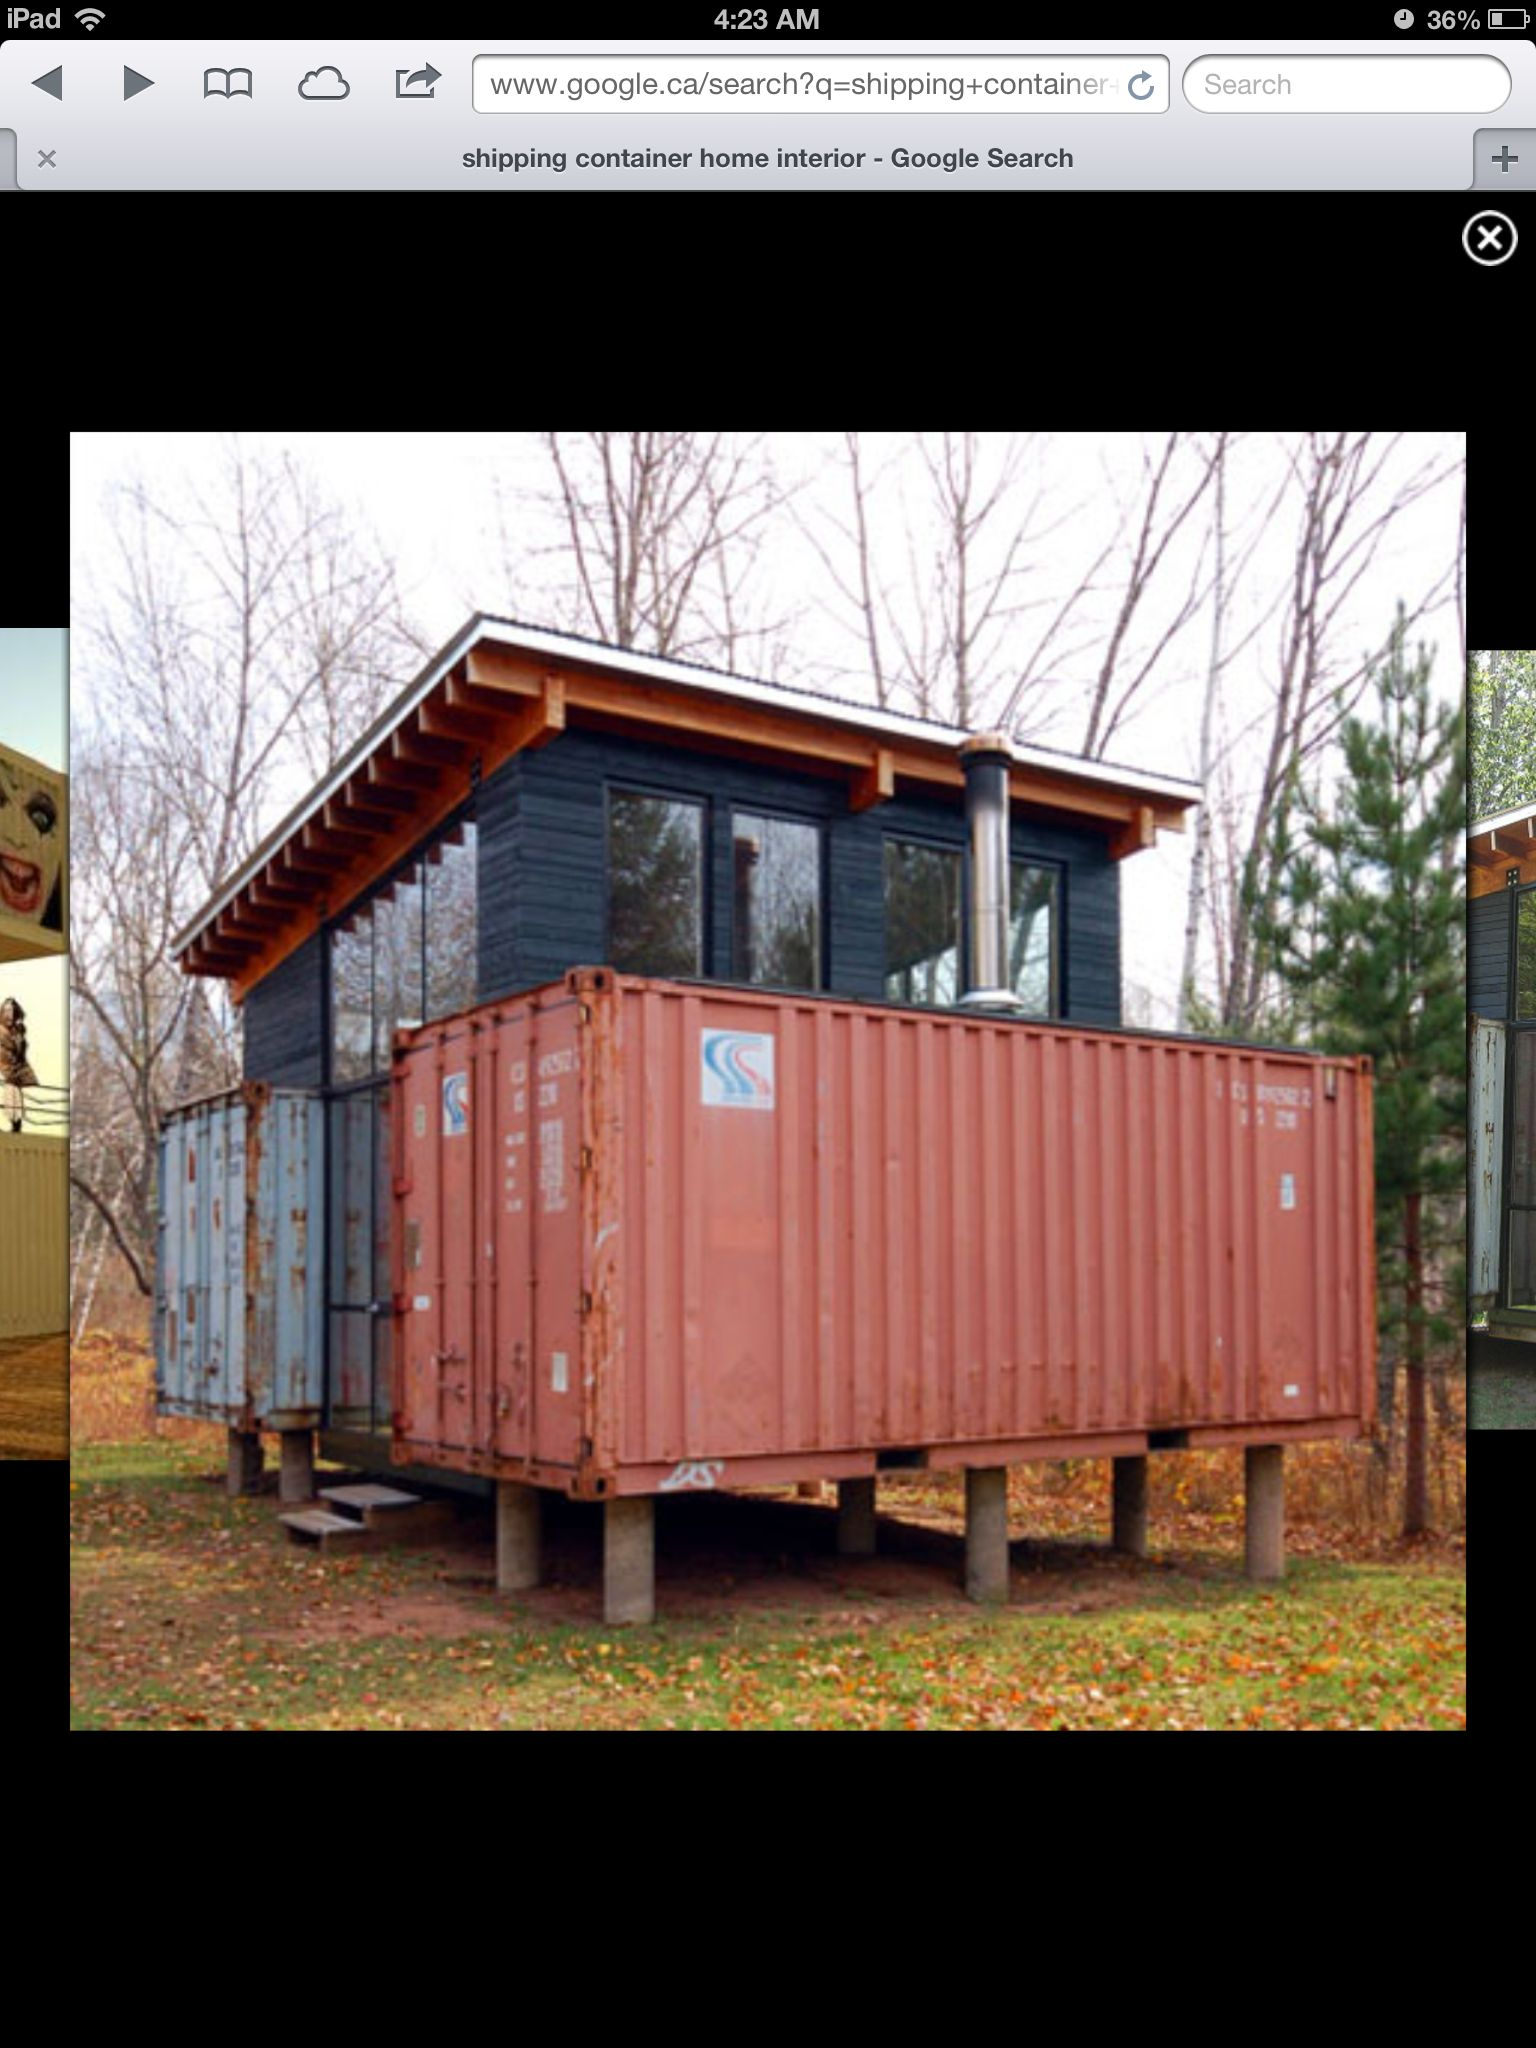 Shipping Container Conversion to House a Generator Shipping Container  Conversion to House a Generator